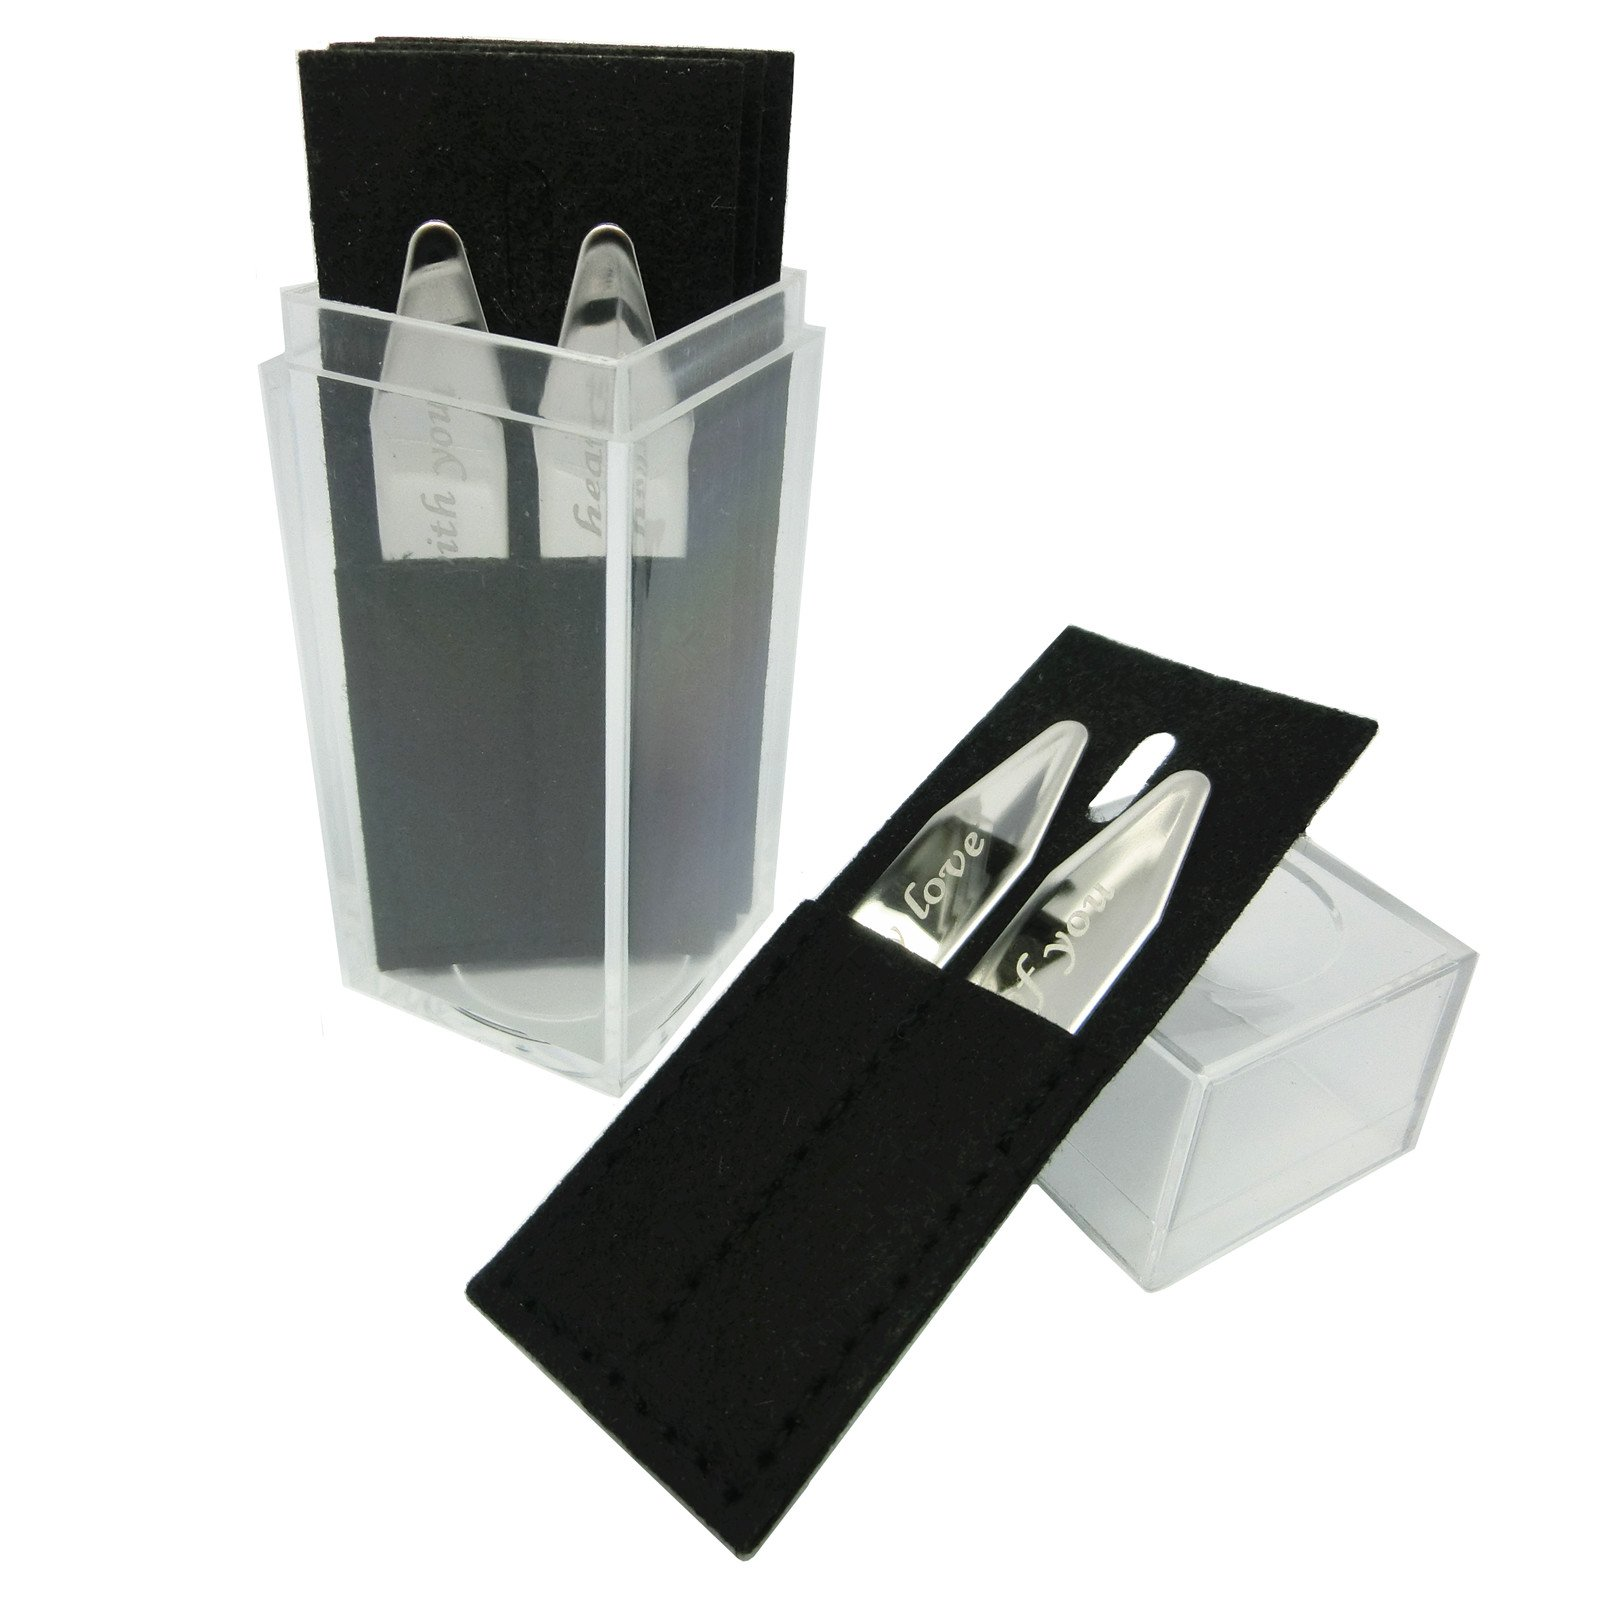 Shang Zun 8 Pcs Love Notes Stainless Steel Collar Stays in Box, Silvery